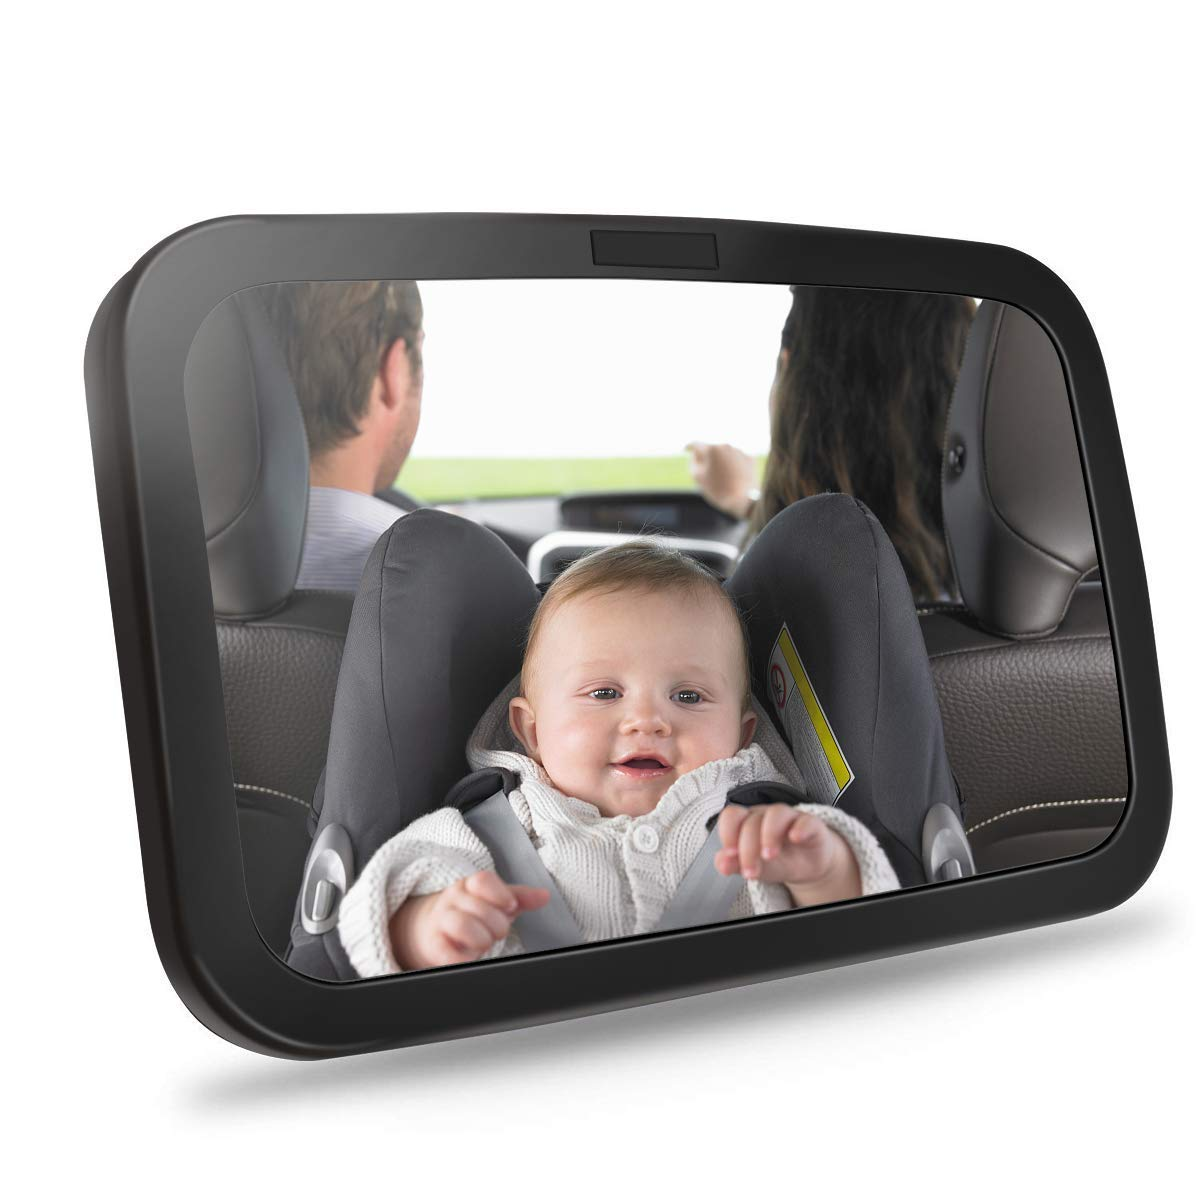 Ideapro Baby Car Mirror for Headrest, Backseat Rear View Facing with Wide Convex Shatterproof Glass and Fully Assembled Back Seat, Wide View Adjustable Acrylic 360° for Infant Safety by ideapro